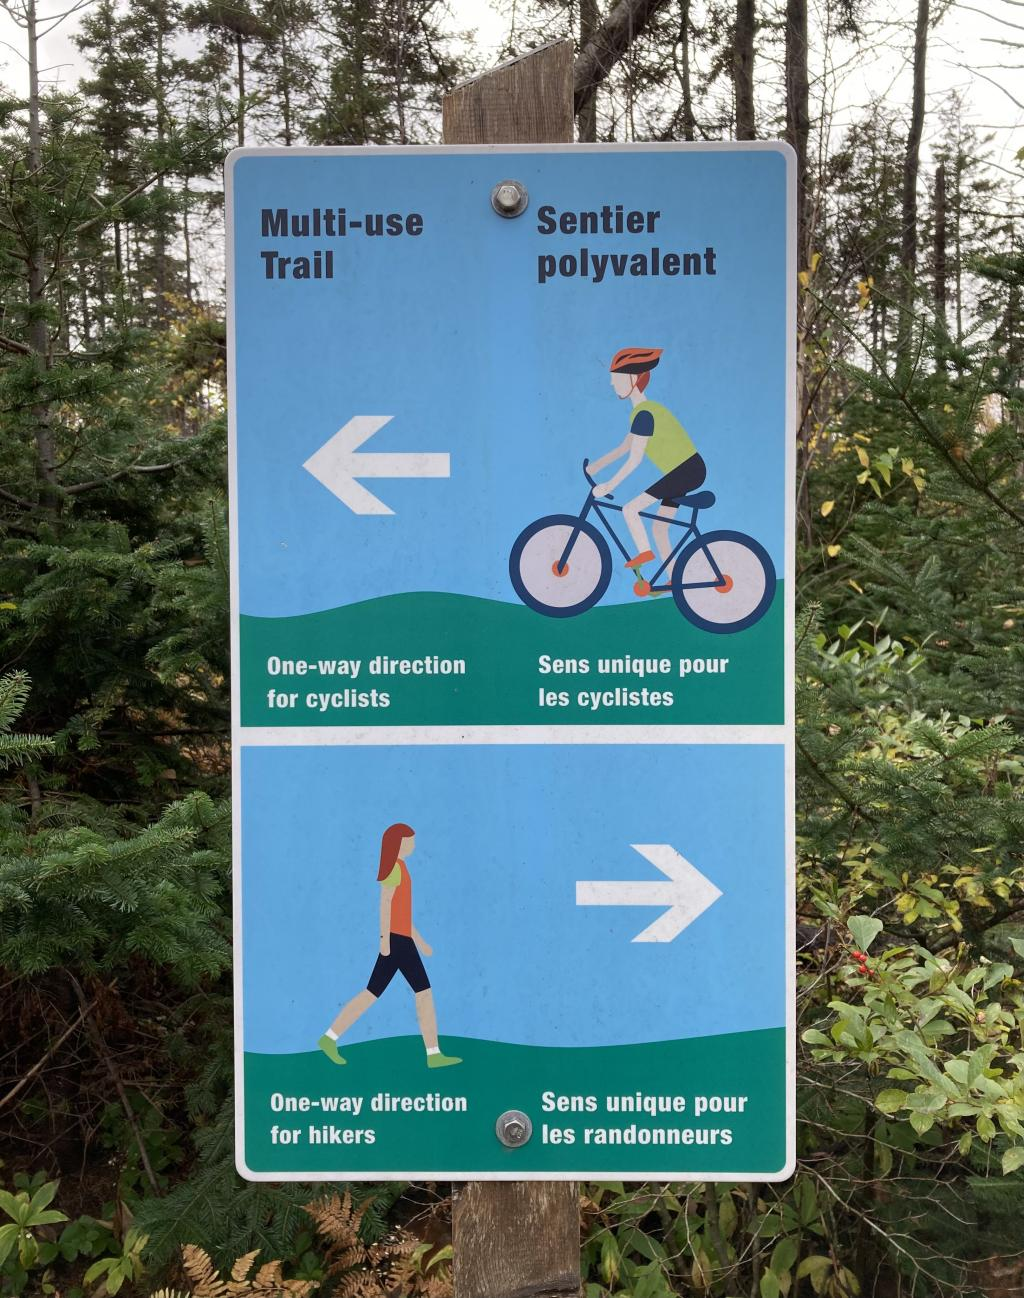 Trail sign with cyclist and pedestrian instructions.